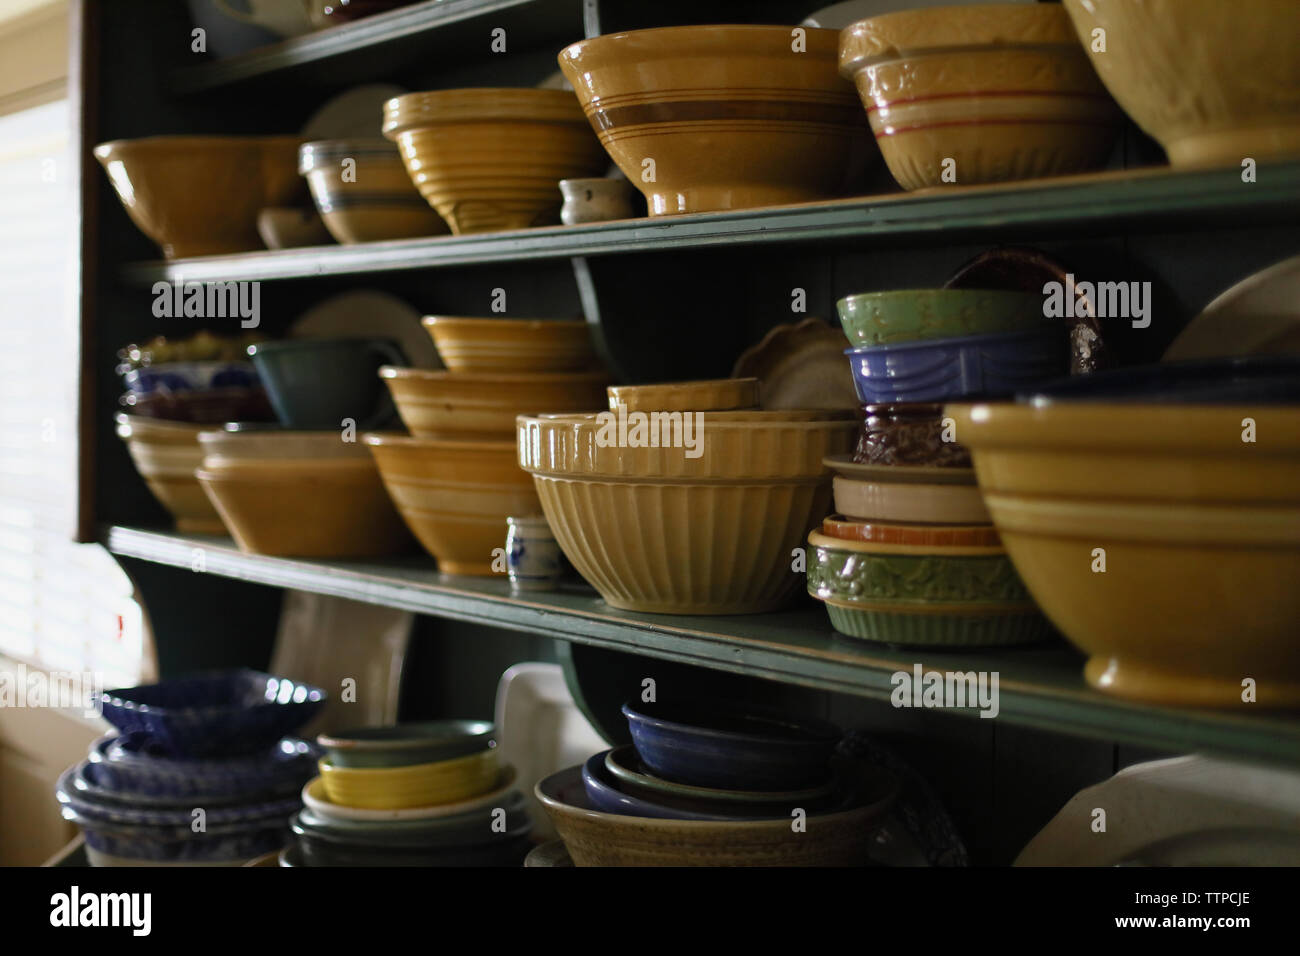 Various bowls arranged on shelves in kitchen Stock Photo